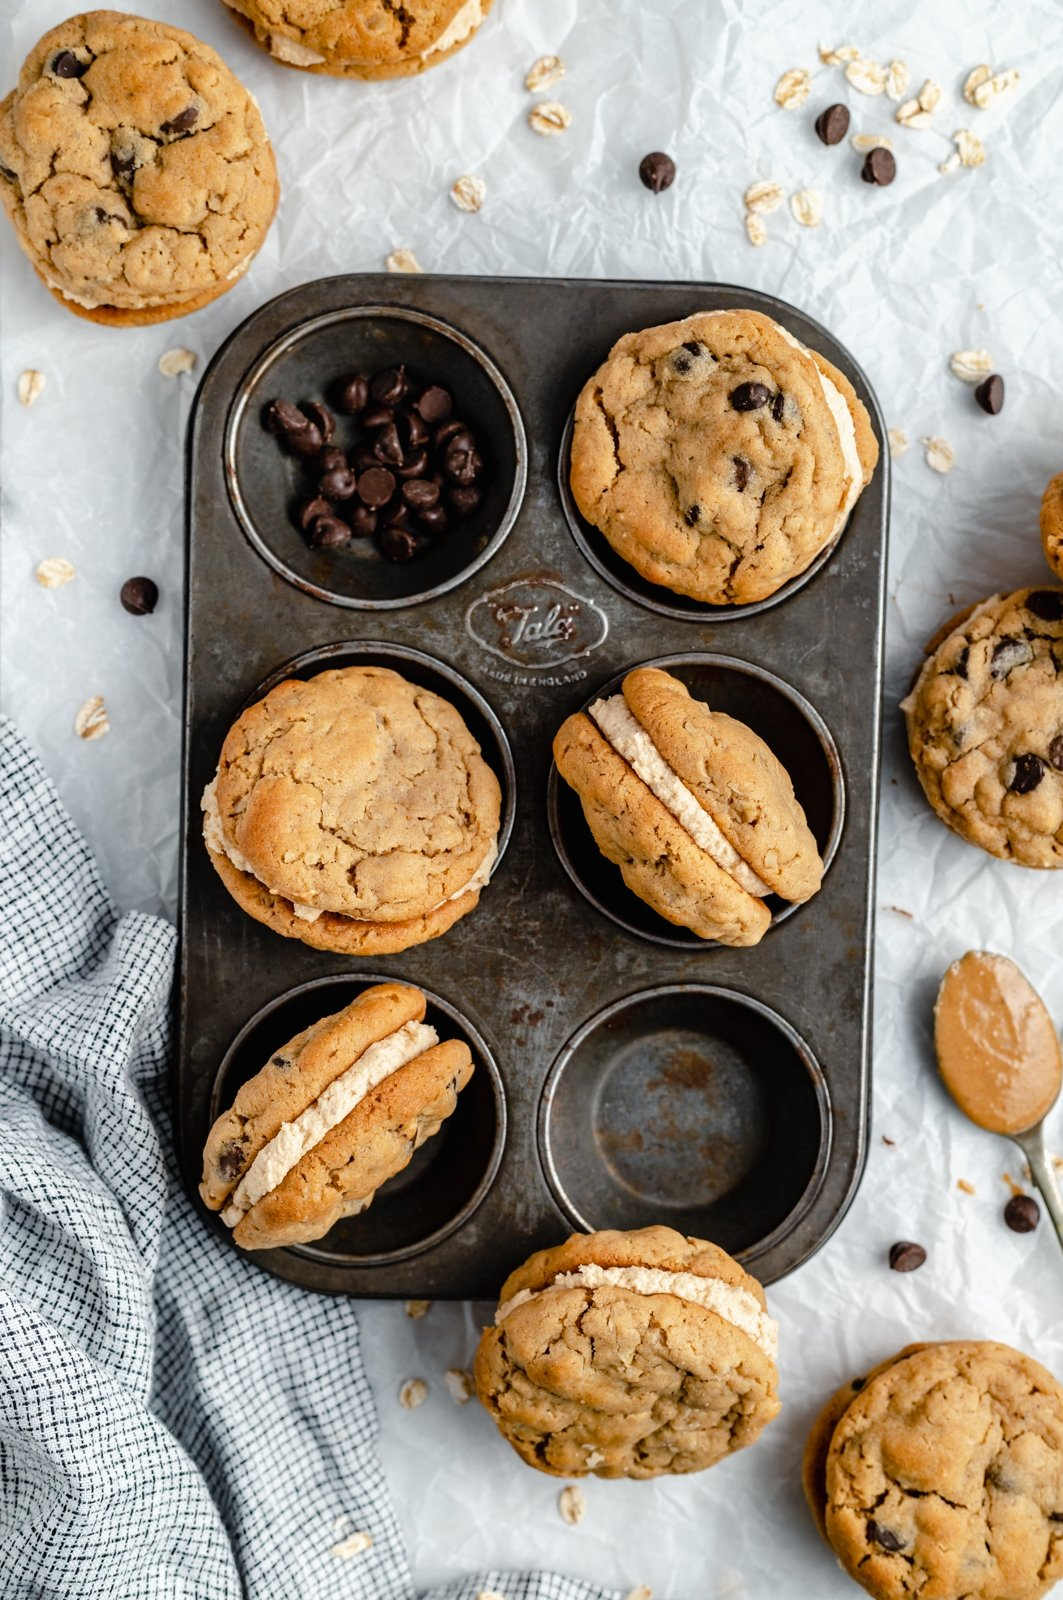 peanut butter sandwich cookies with chocolate chips in a pan